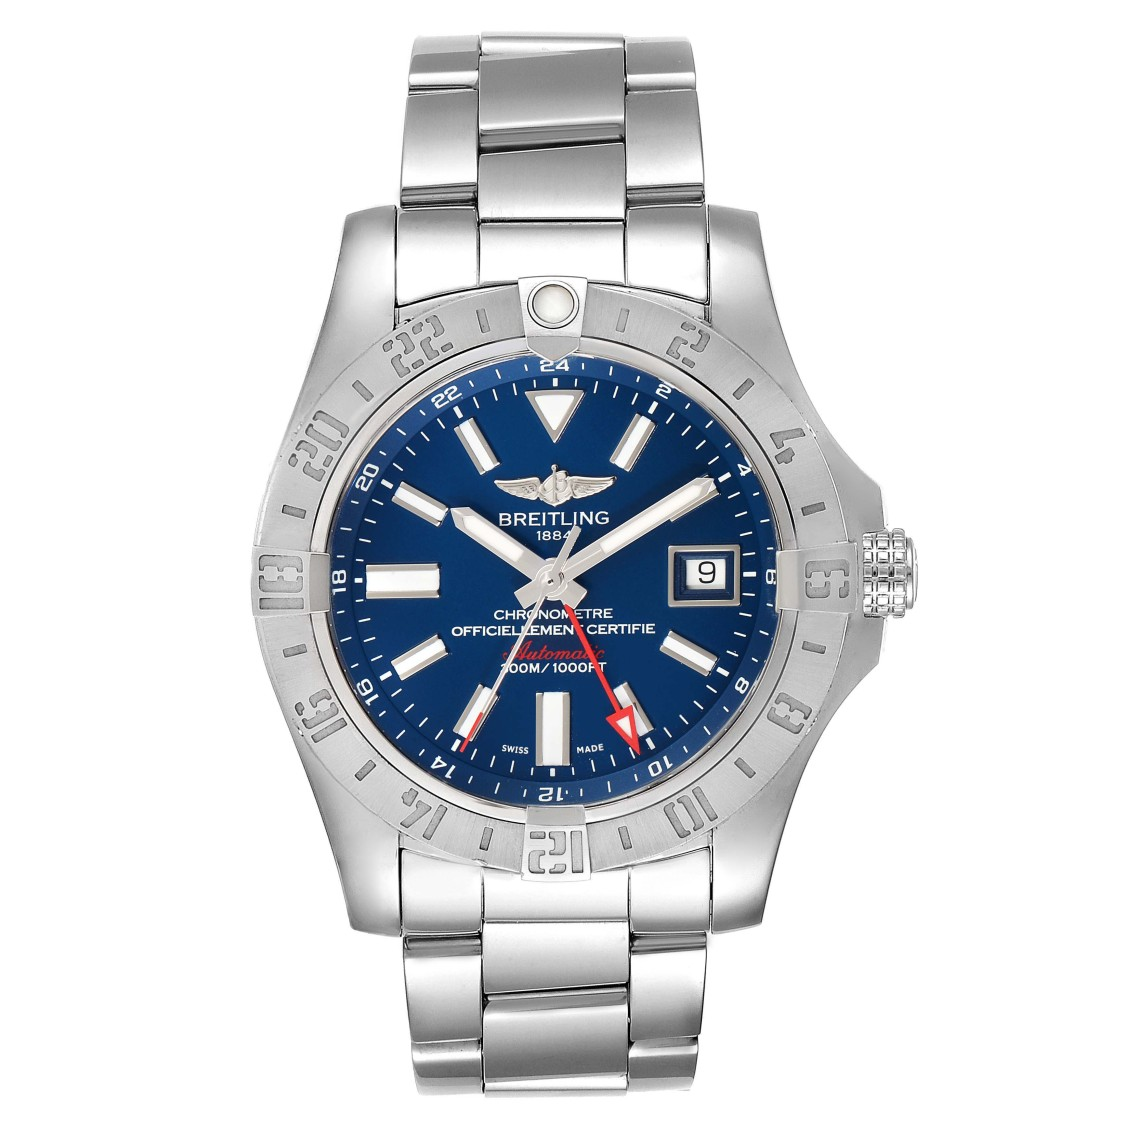 BREITLING AEROMARINE AVENGER II GMT BLUE DIAL MENS WATCH A32390 BOX PAPERS